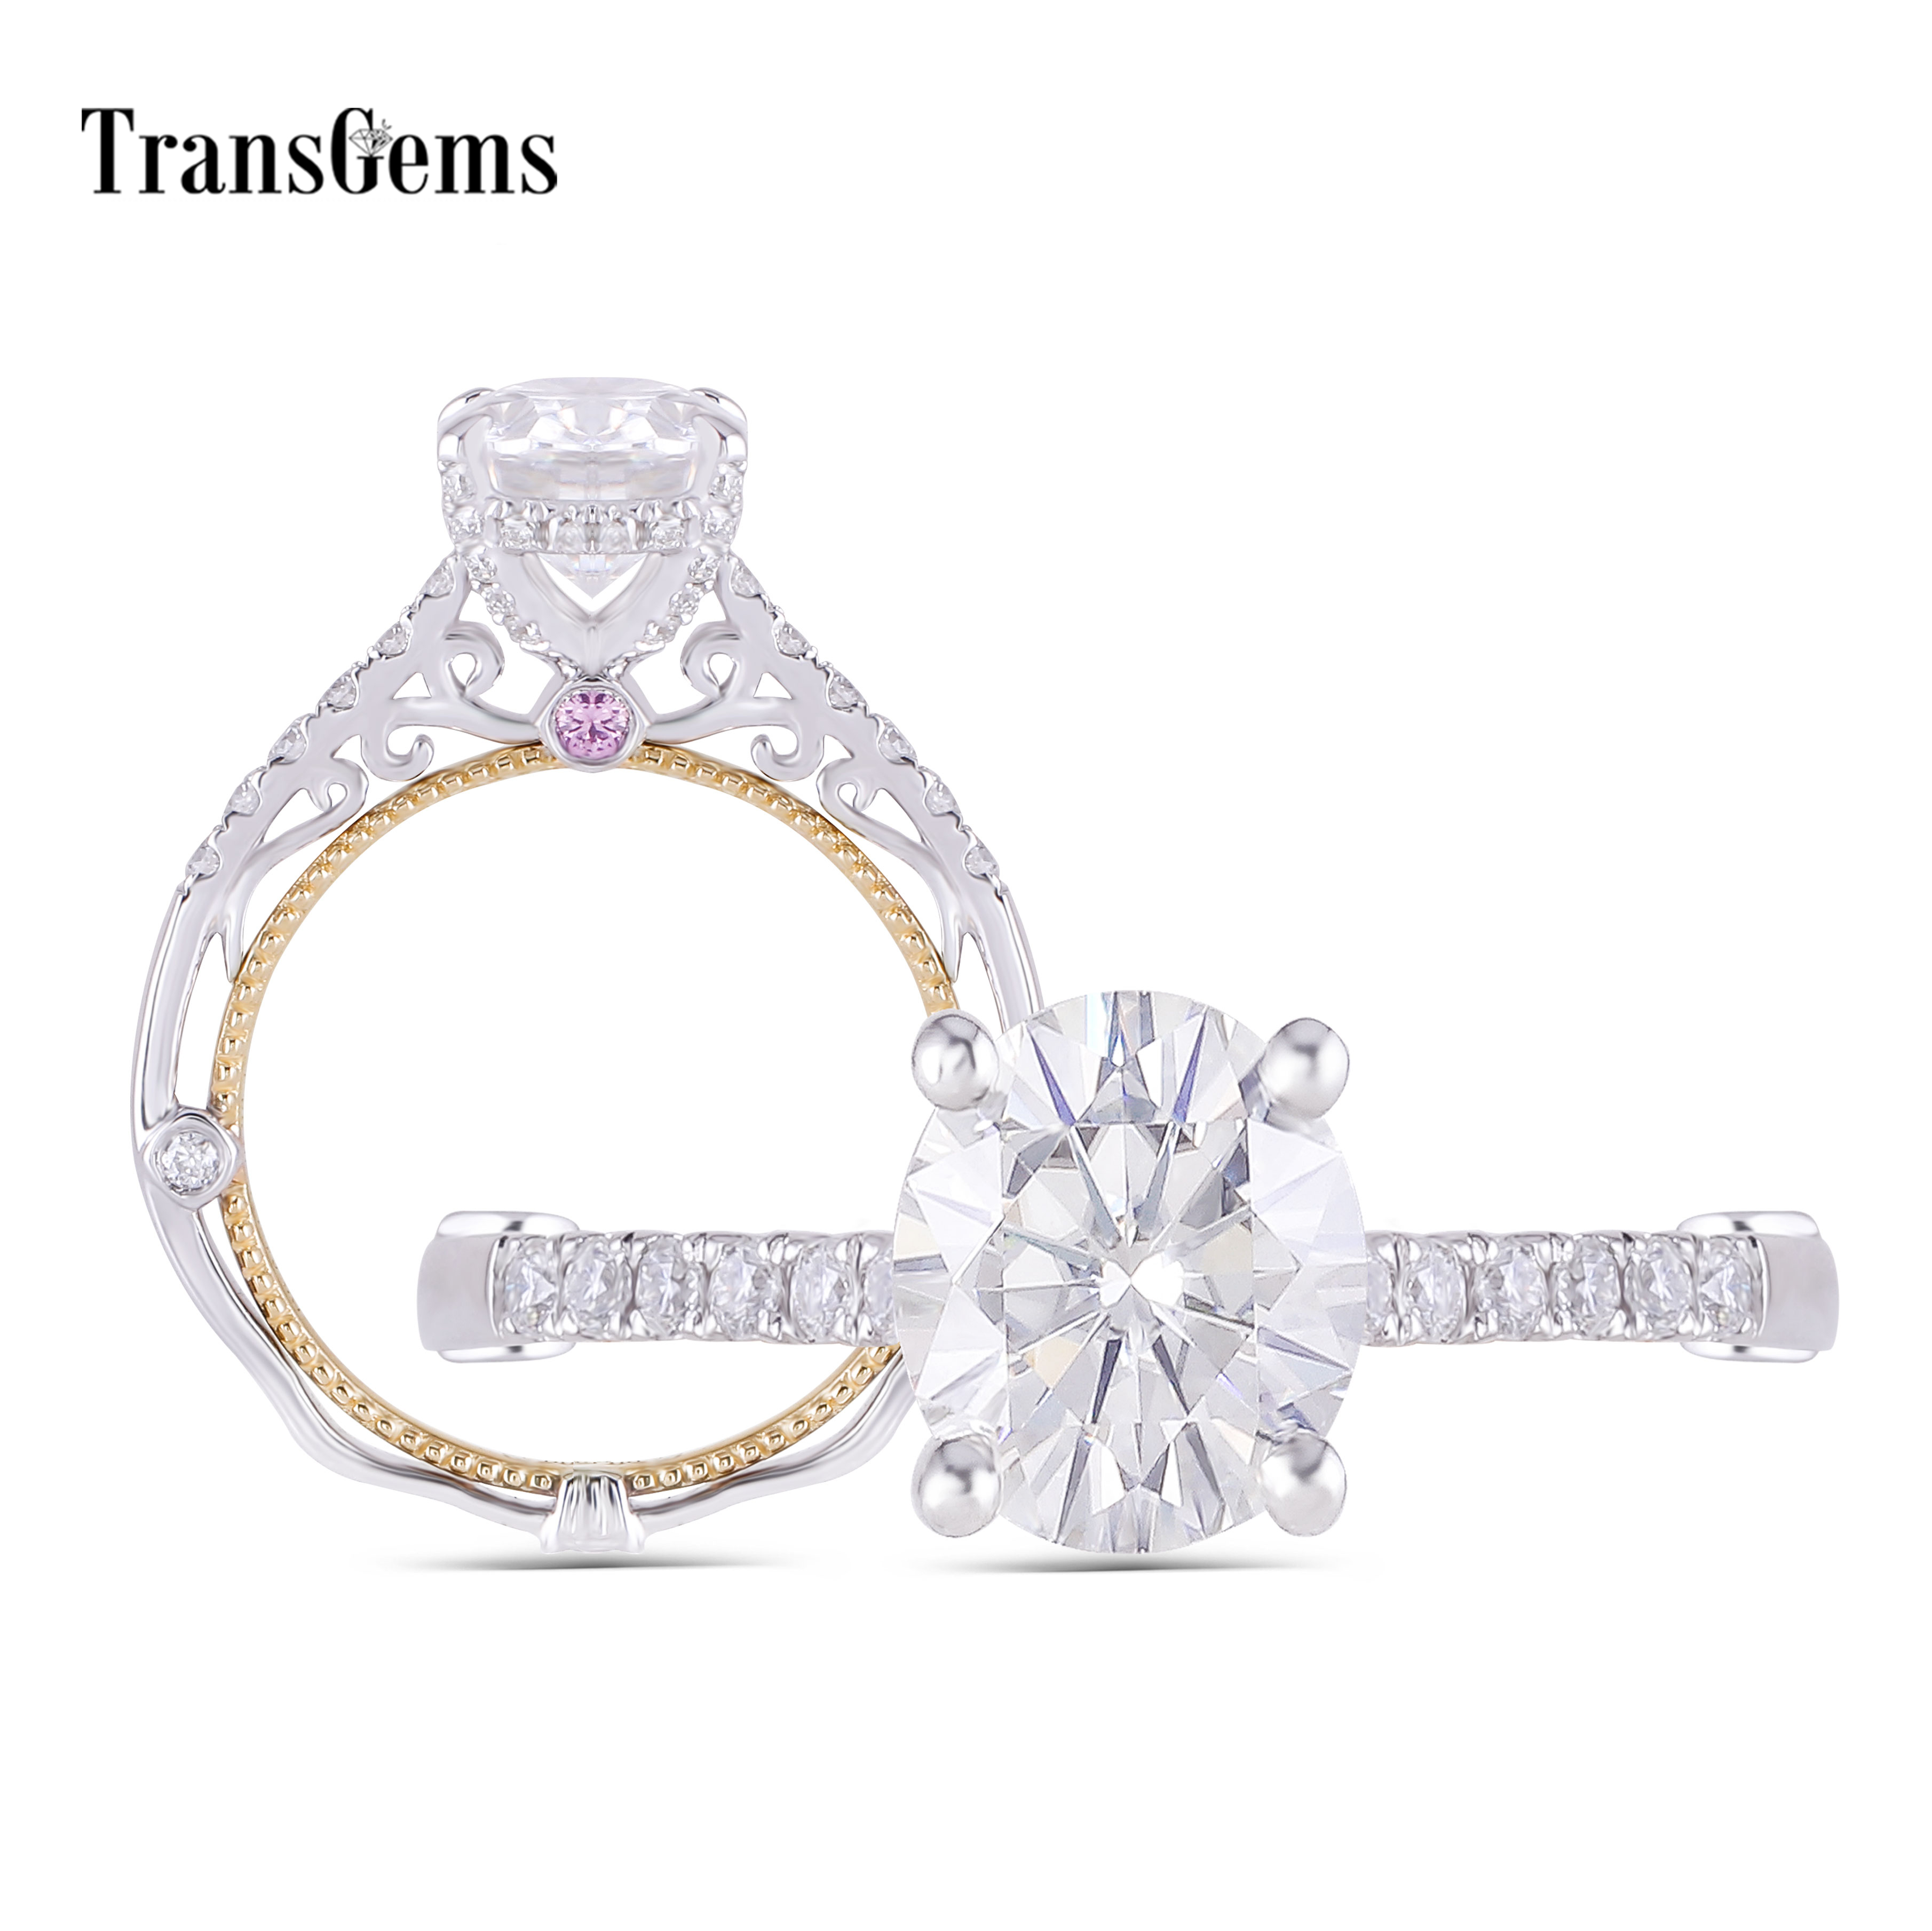 Transgems 14K White and Yellow Gold Center 2ct Oval F Color Moissanite Engagement Ring with Pink Sapphire Anniversary Gifts